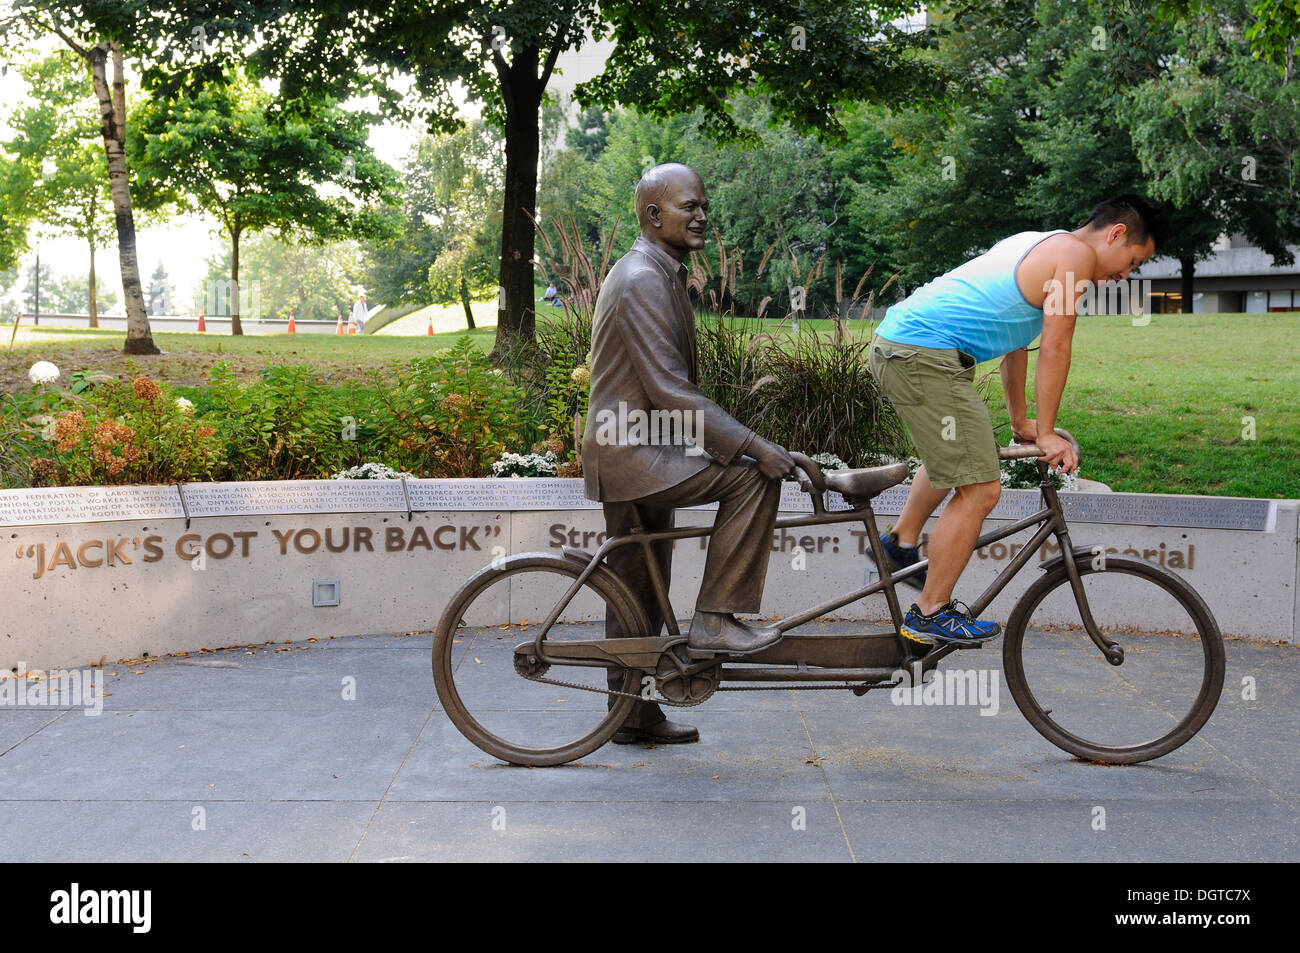 A statue memorializing Jack Layton, a bronze sculpture depicting the former Toronto, NDP leader riding a tandem bike. - Stock Image